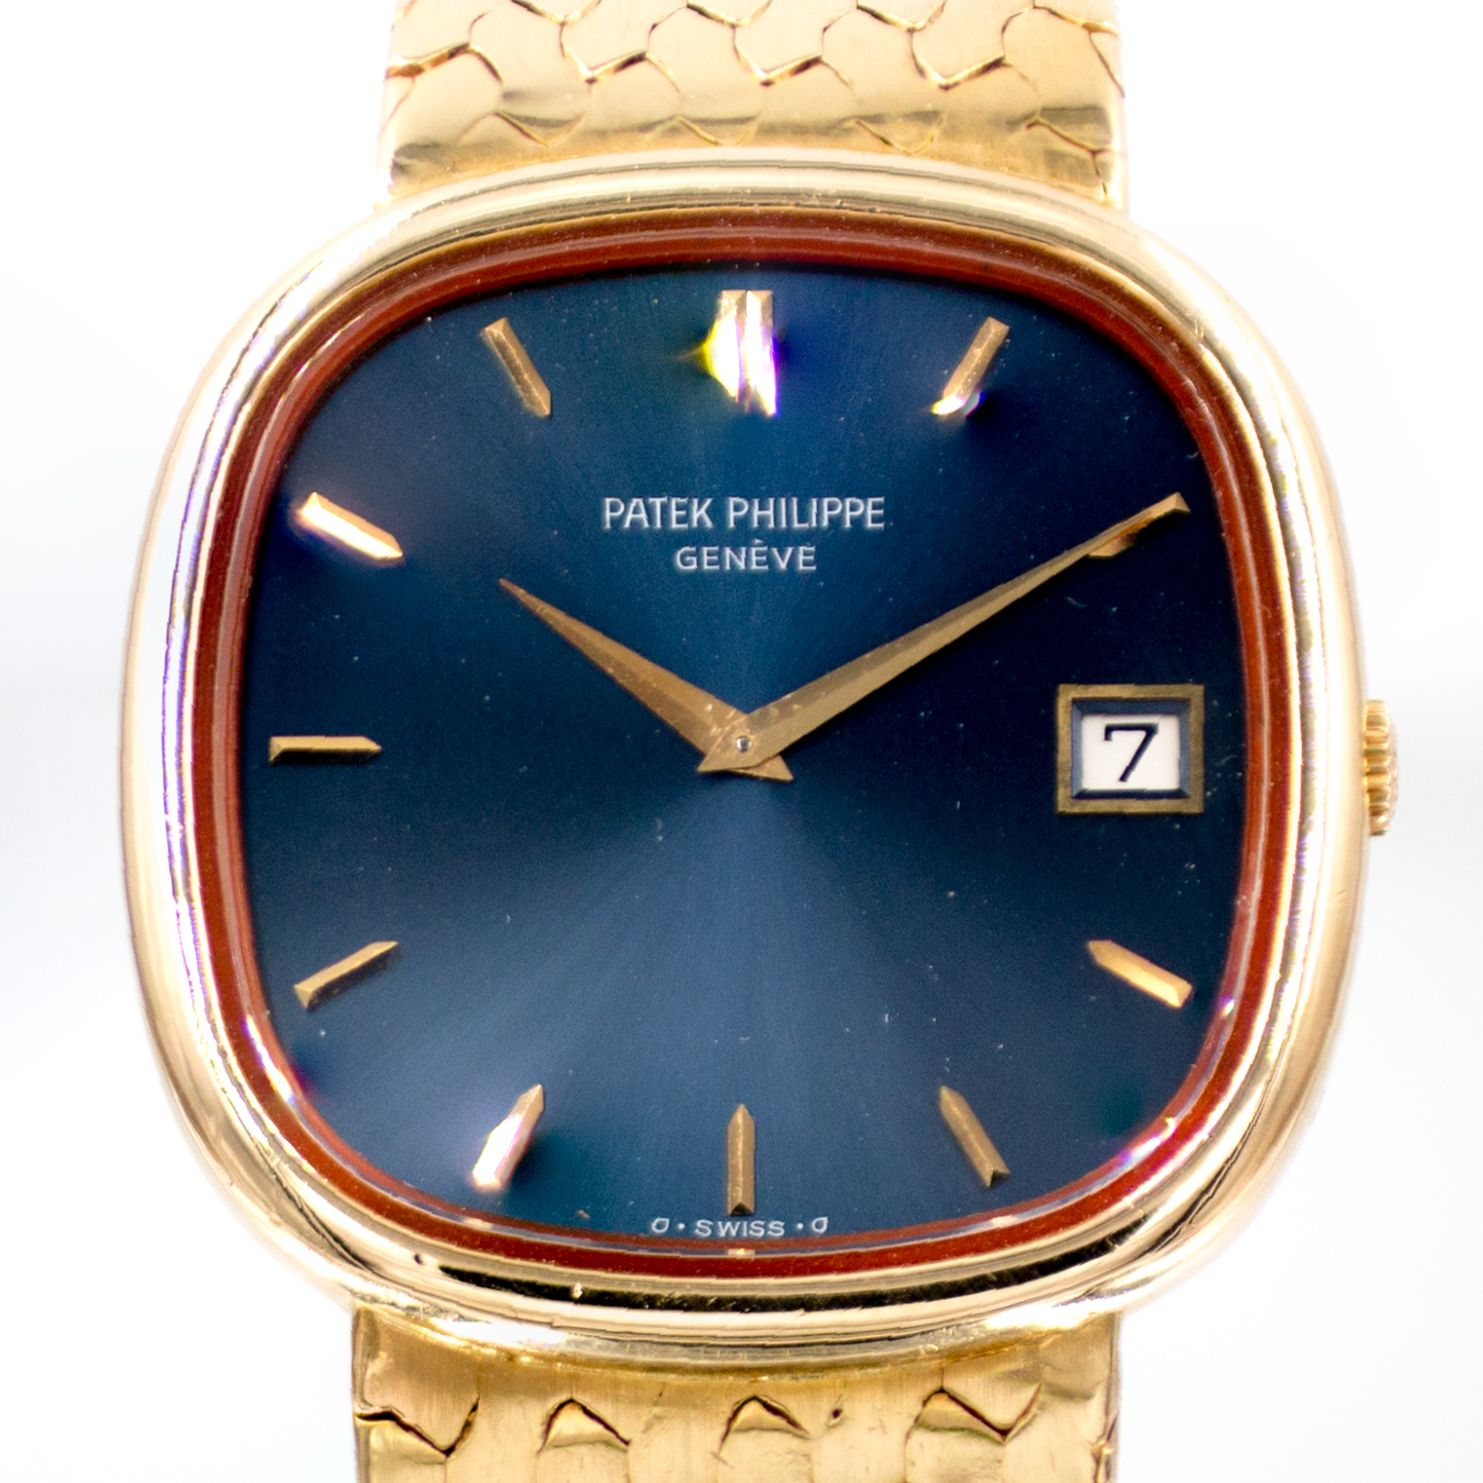 Patek Philippe Mens Jumbo Ellipse TV Screen 18k Gold Watch & Box Ref. 3604/1